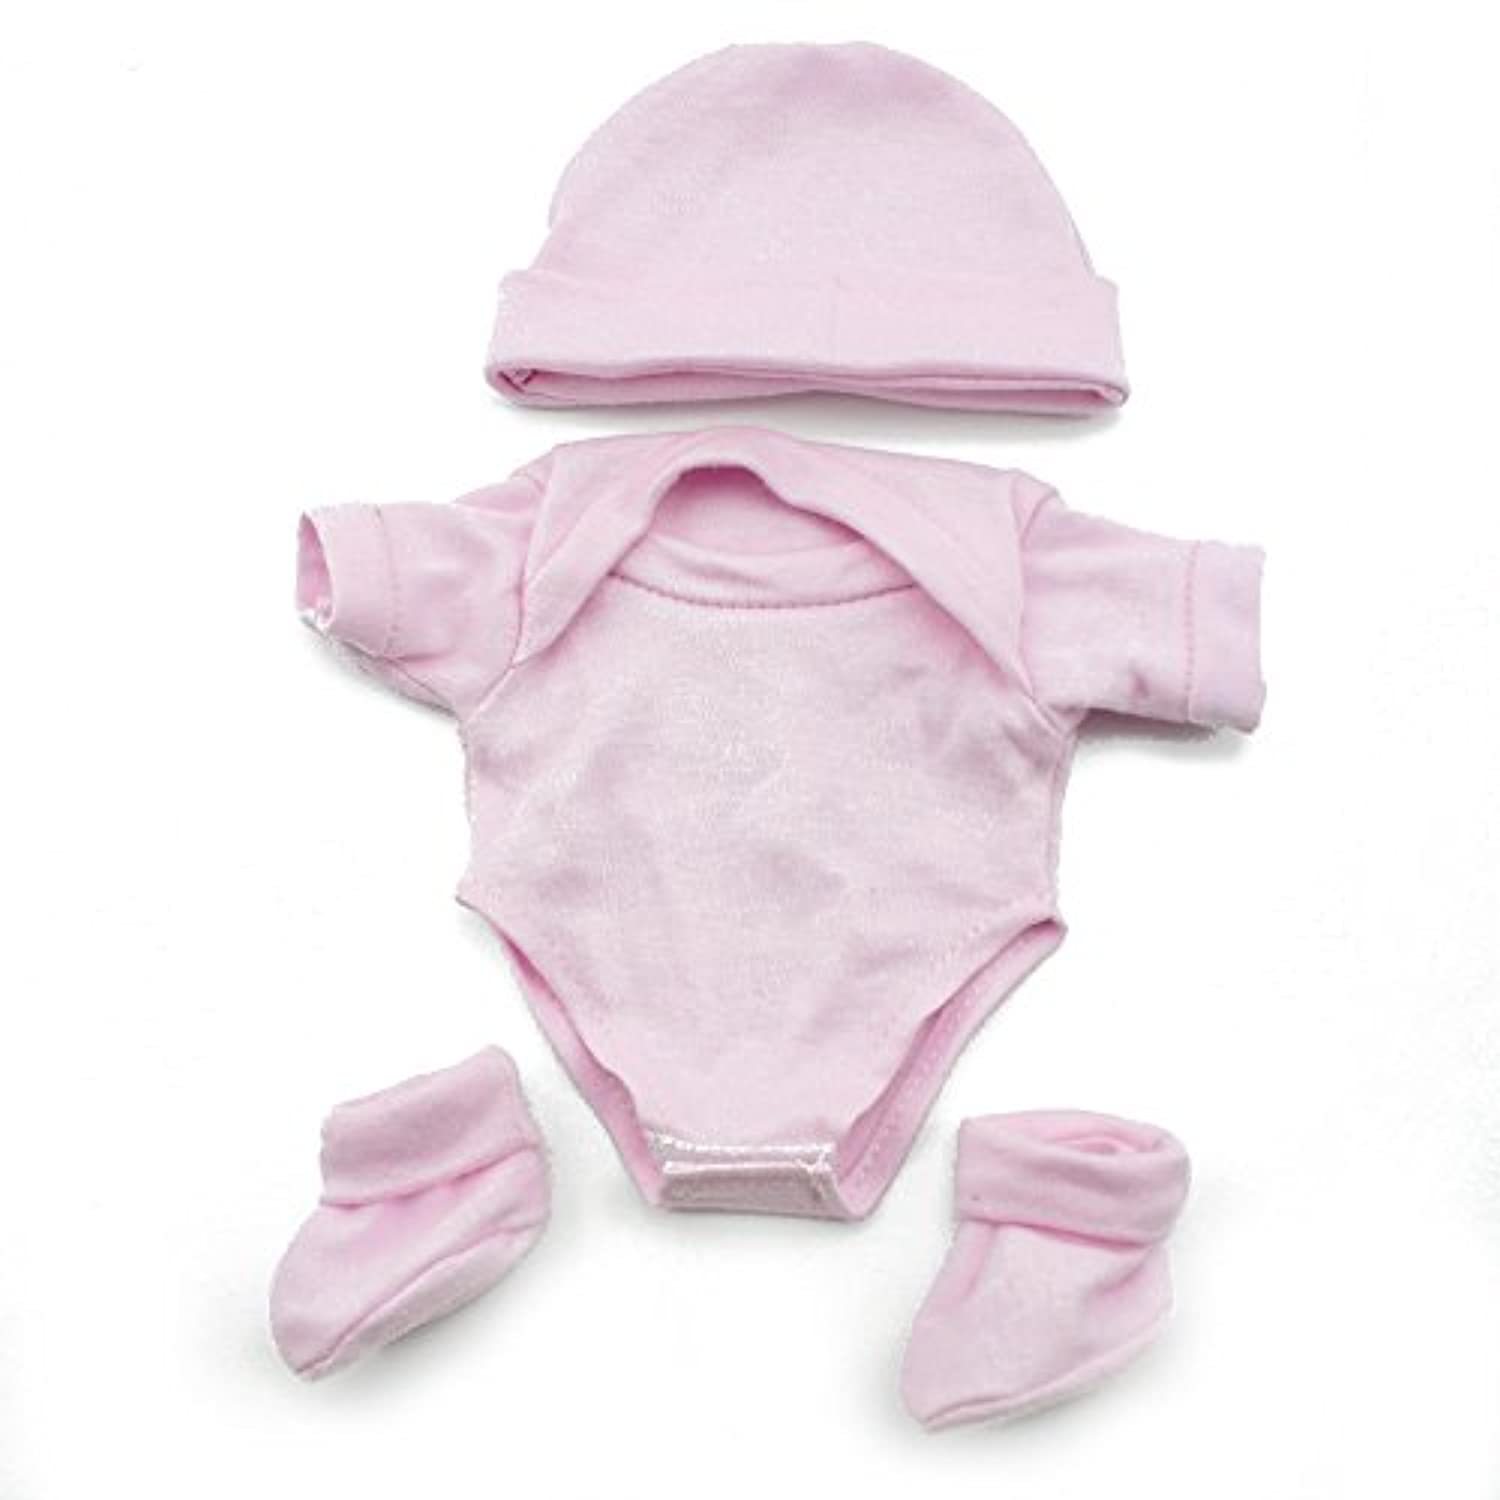 Pure Pink Cute Cloth Romper Clothes Hat Bootees For 10 Reborn Baby Dolls by Reborn Babies